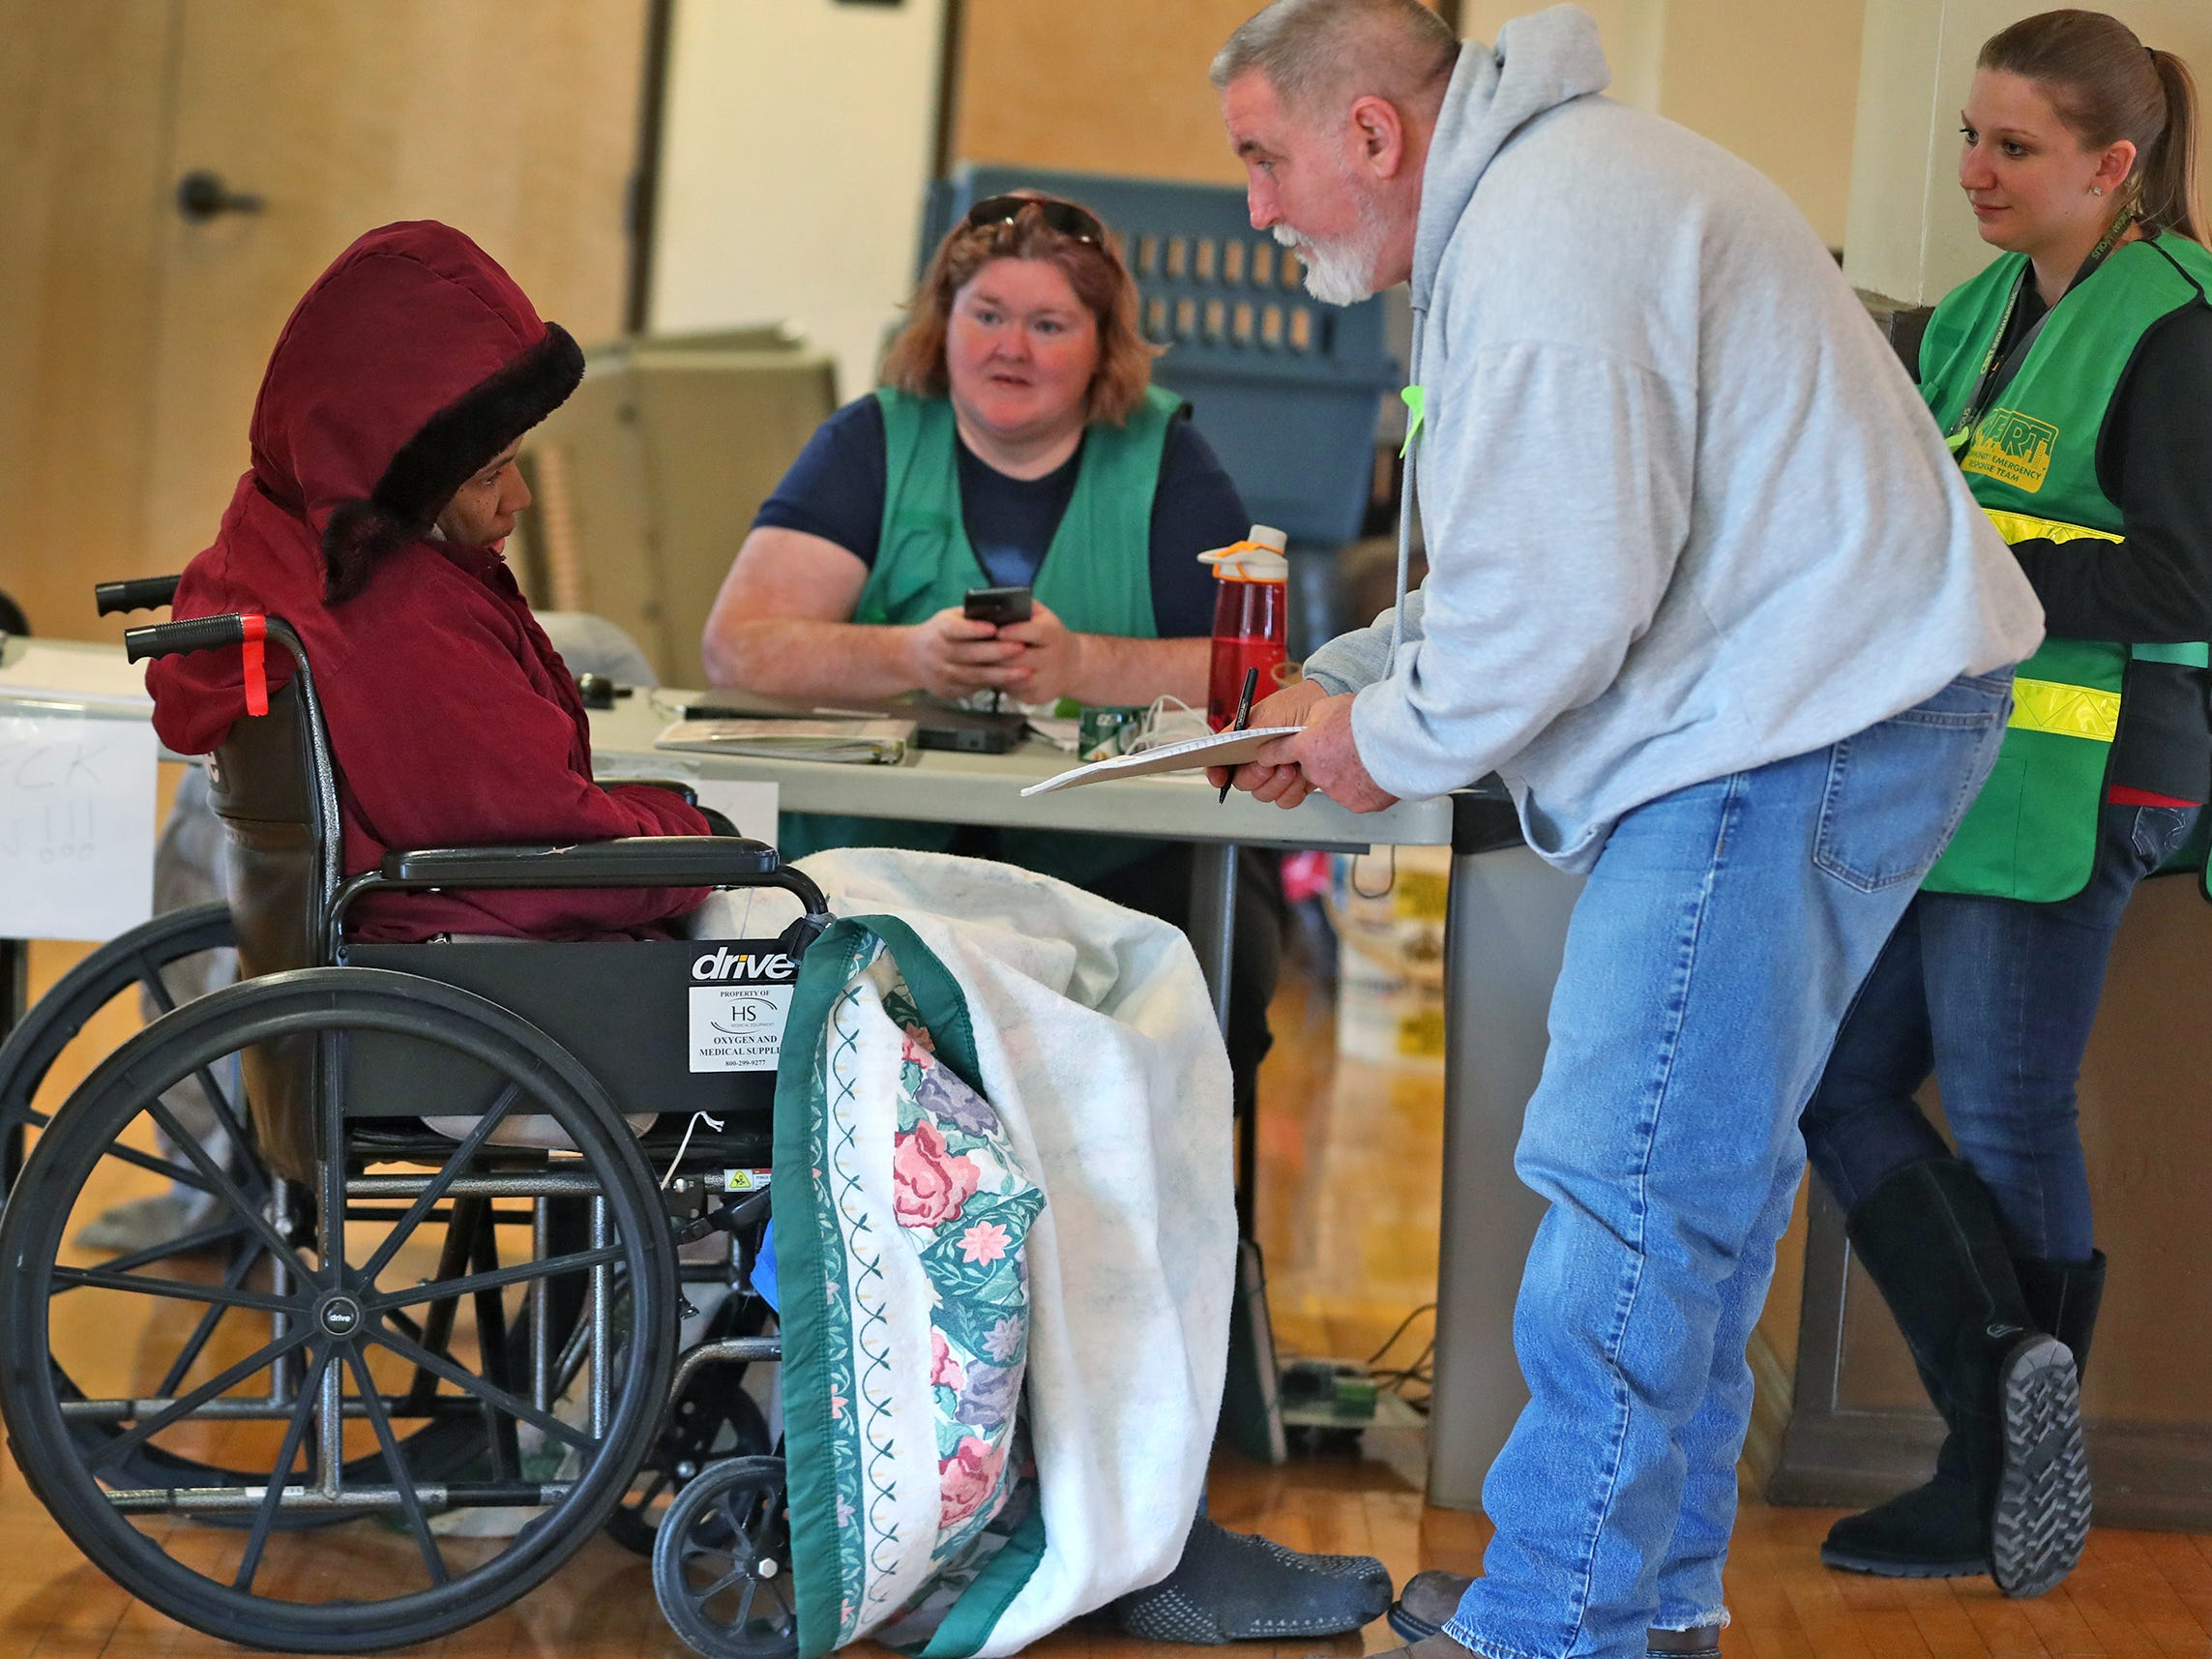 CERT volunteer James Schutte, right, checks in Tara Drain, left, to a Community Emergency Response Team warming center at the Municipal Gardens, 1831 Lafayette Rd., Wednesday, Jan. 30, 2019.  Wind chills made it feel like almost 30 below zero.